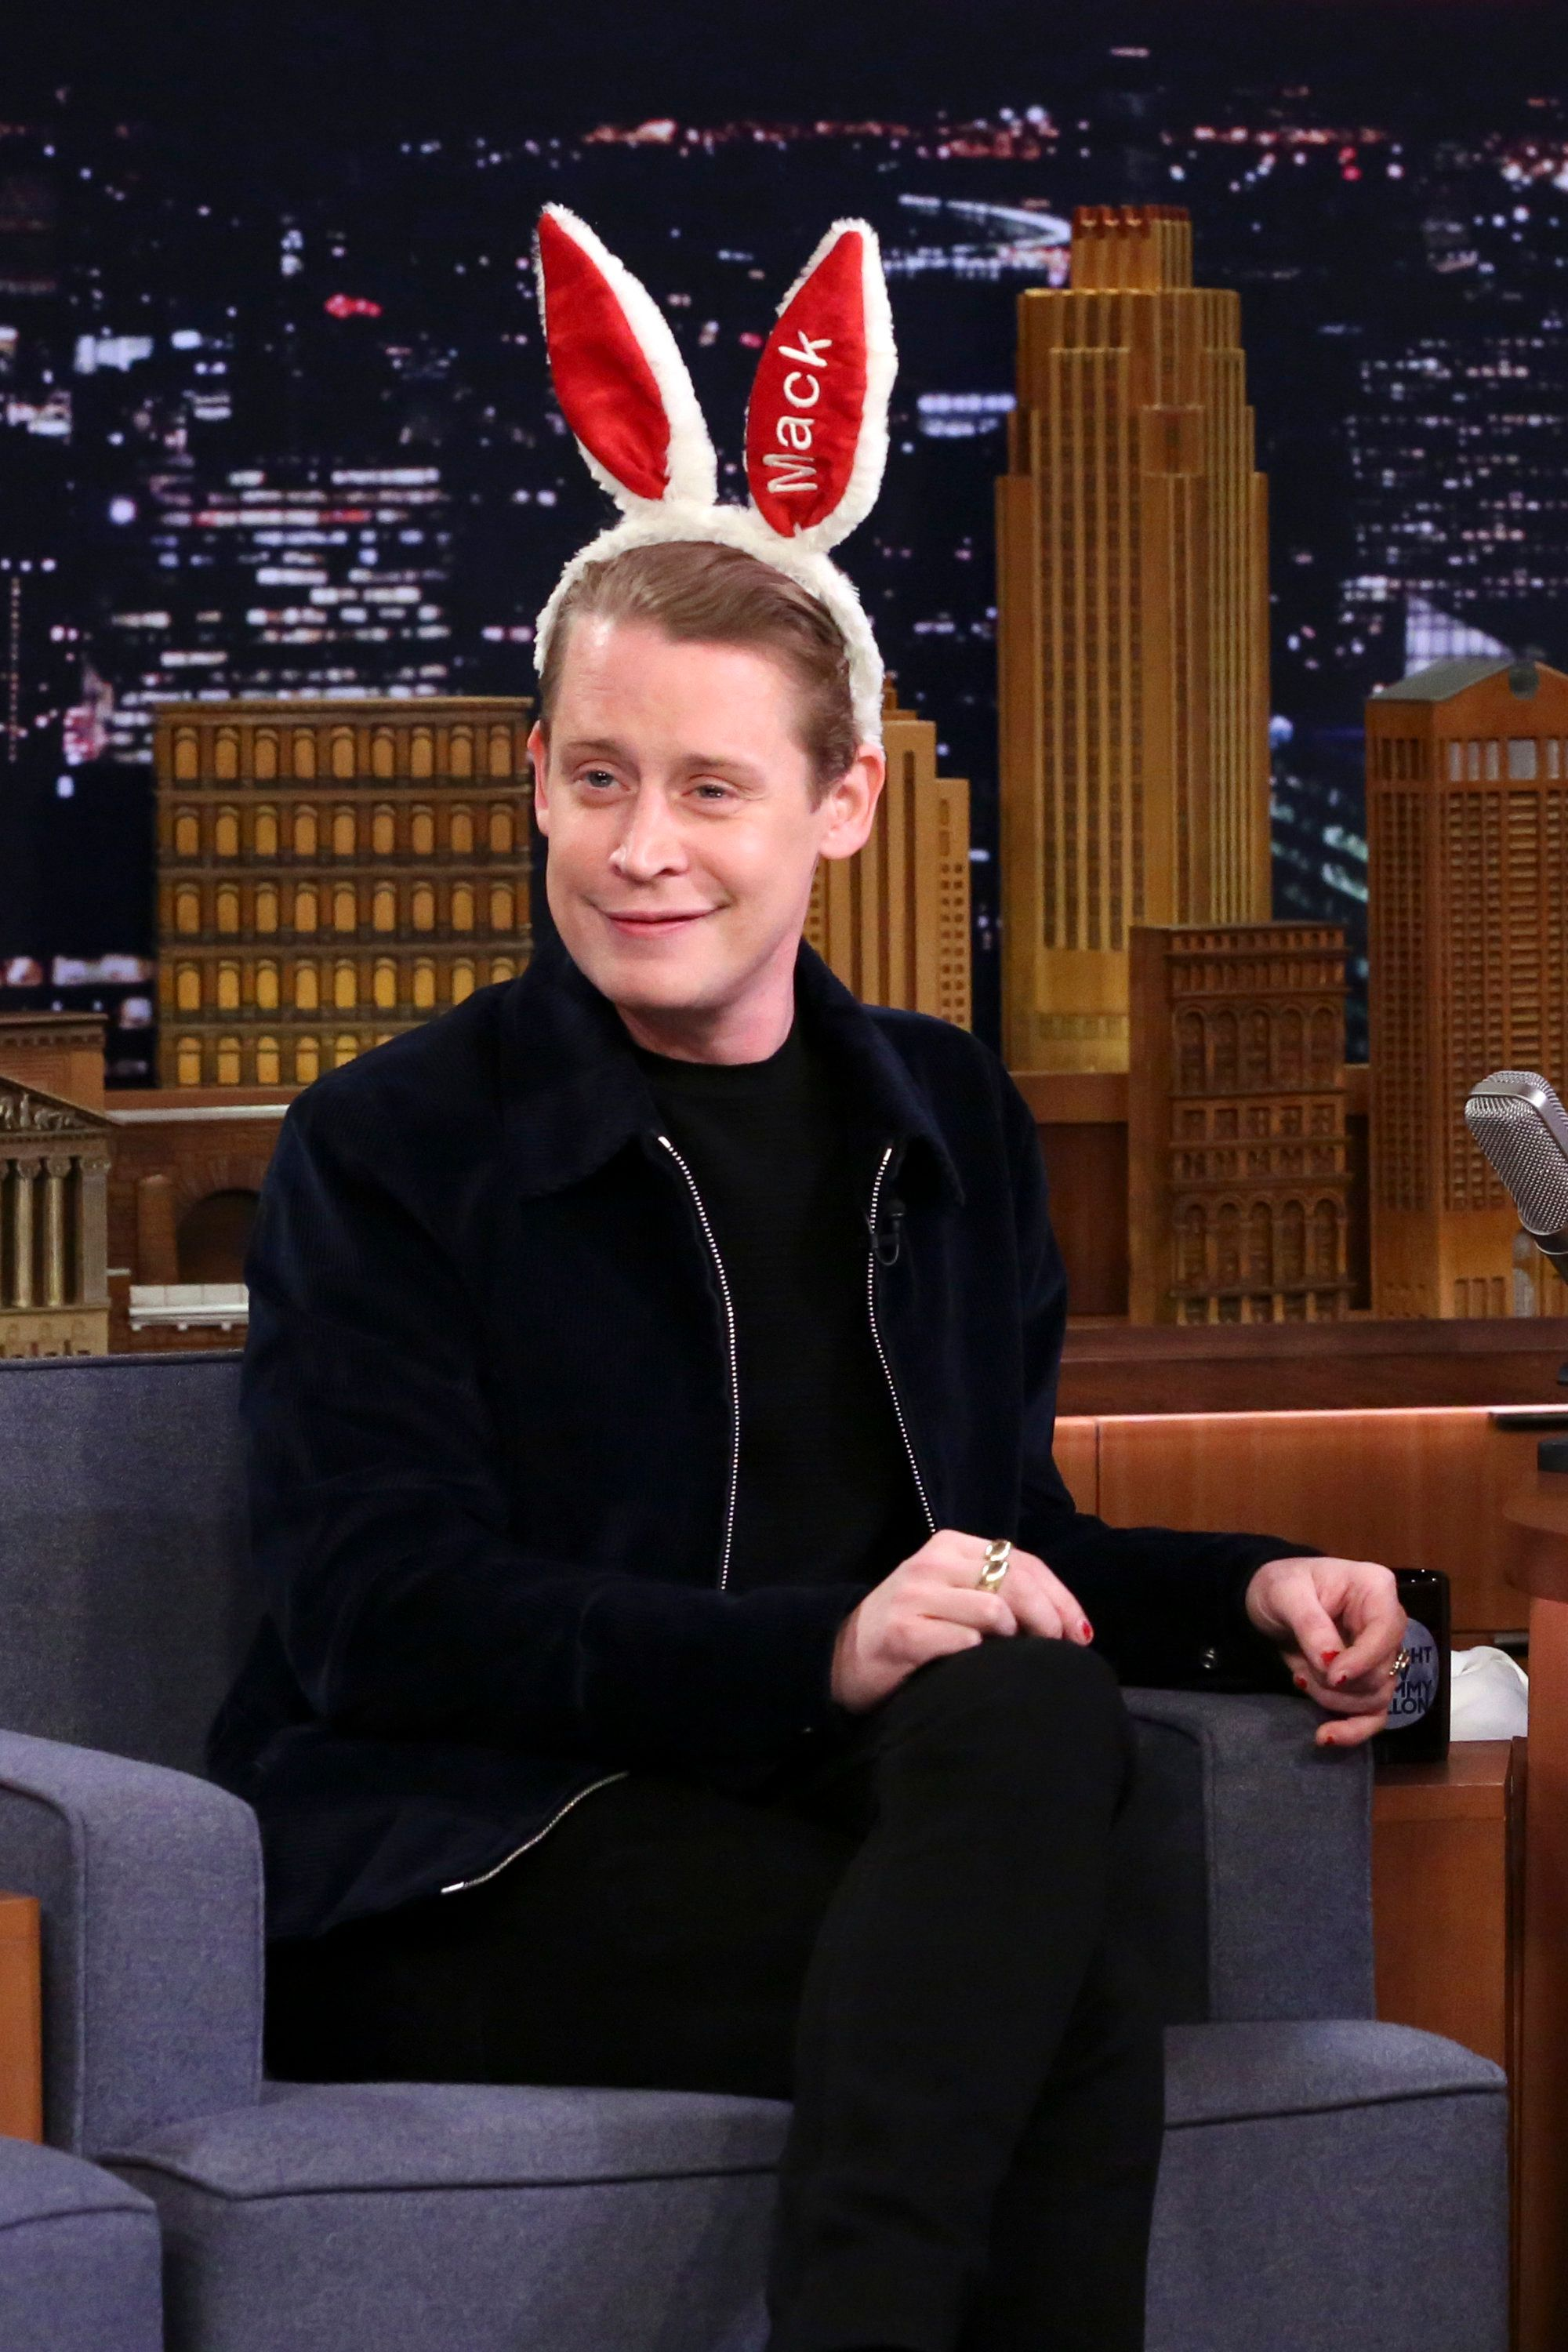 THE TONIGHT SHOW STARRING JIMMY FALLON -- Episode 0970 -- Pictured: Actor Macaulay Culkin during an interview on November 28, 2018 -- (Photo by: Andrew Lipovsky/NBC/NBCU Photo Bank via Getty Images)